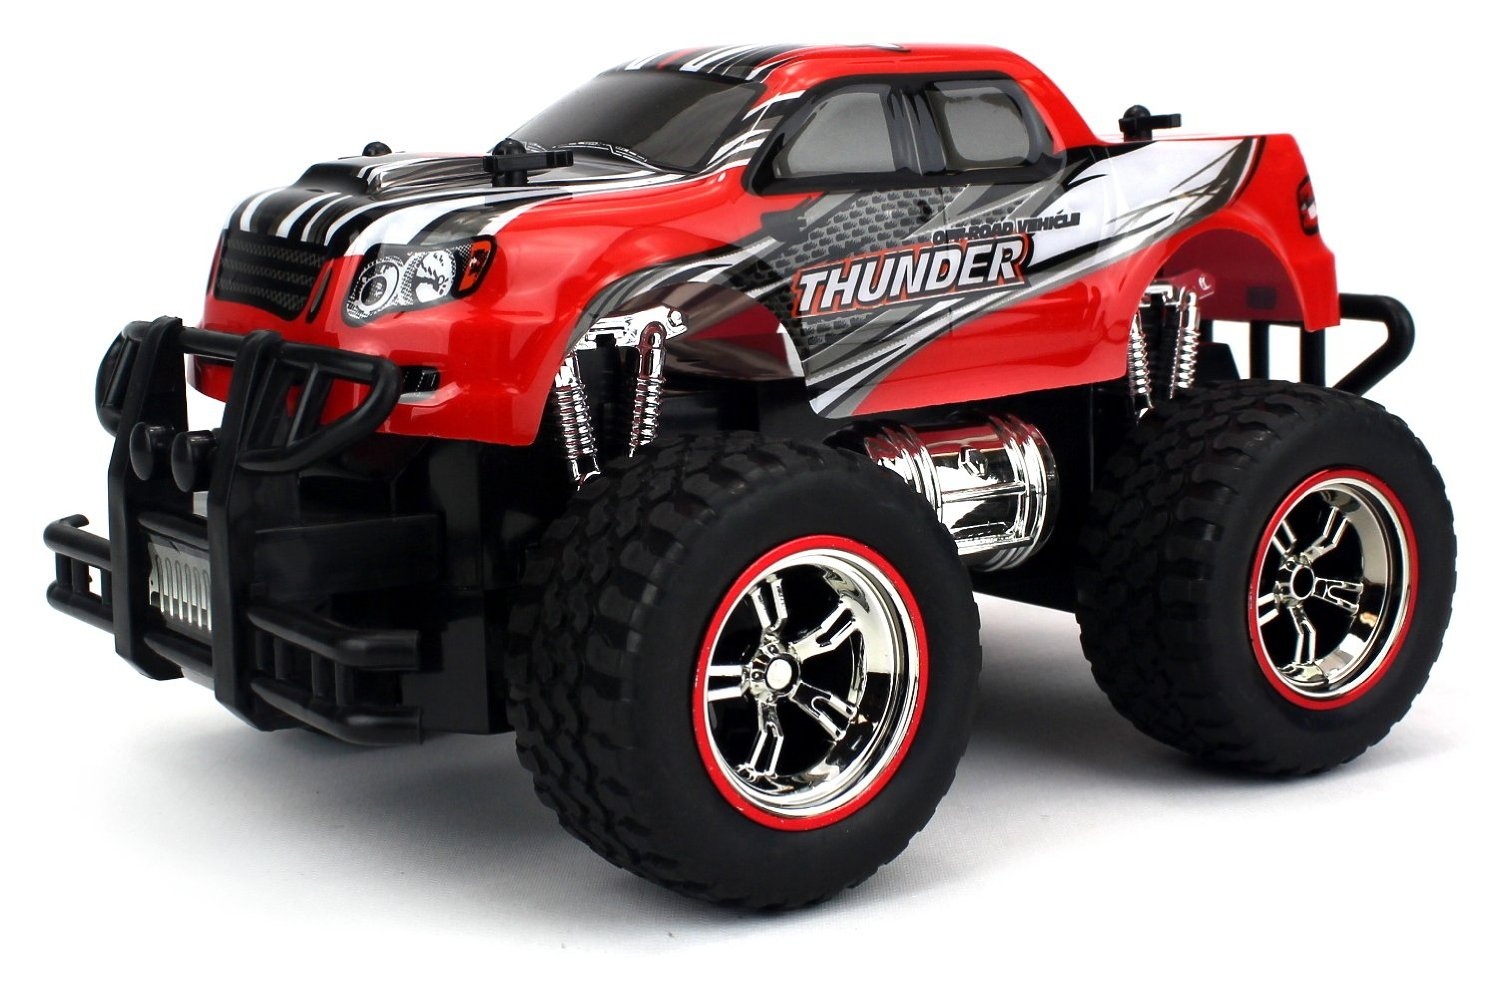 Fast And Furious Elite Off Road Rc Vehicle By Jada Toys Easily Programmable Remotecontrol Cars Middle Years 7 10